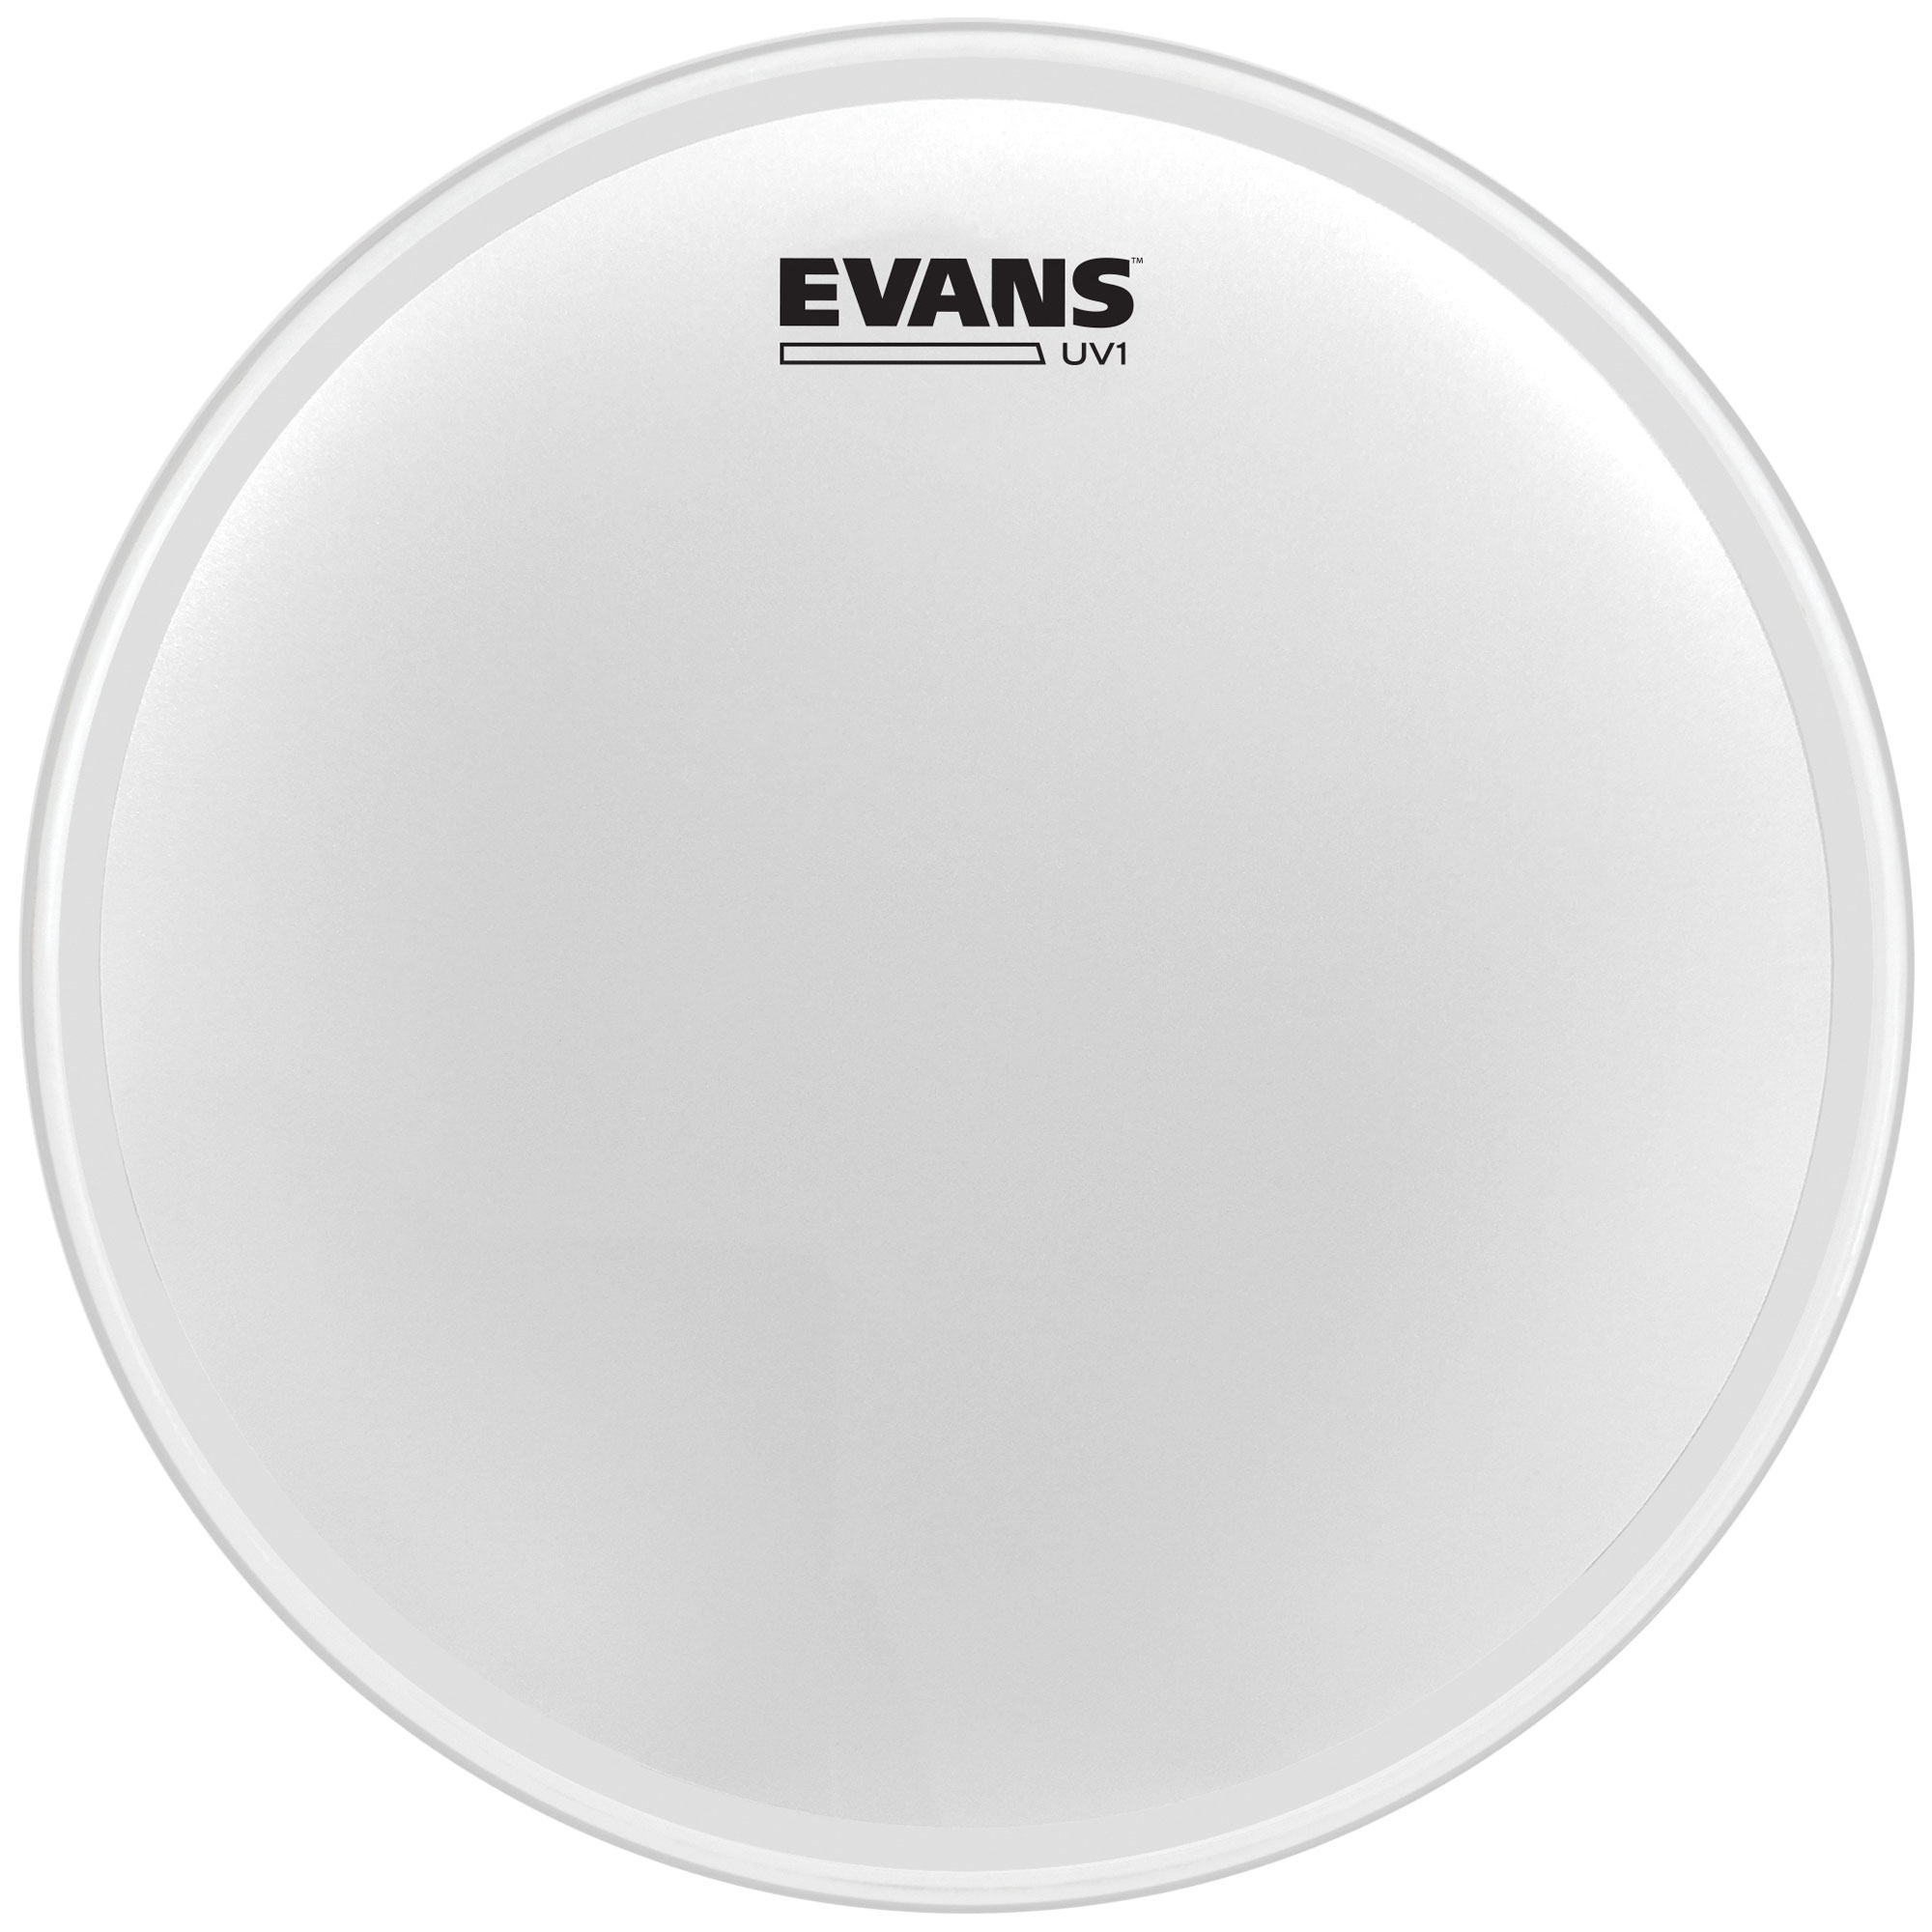 "Evans 15"" UV1 Coated Drum Head"